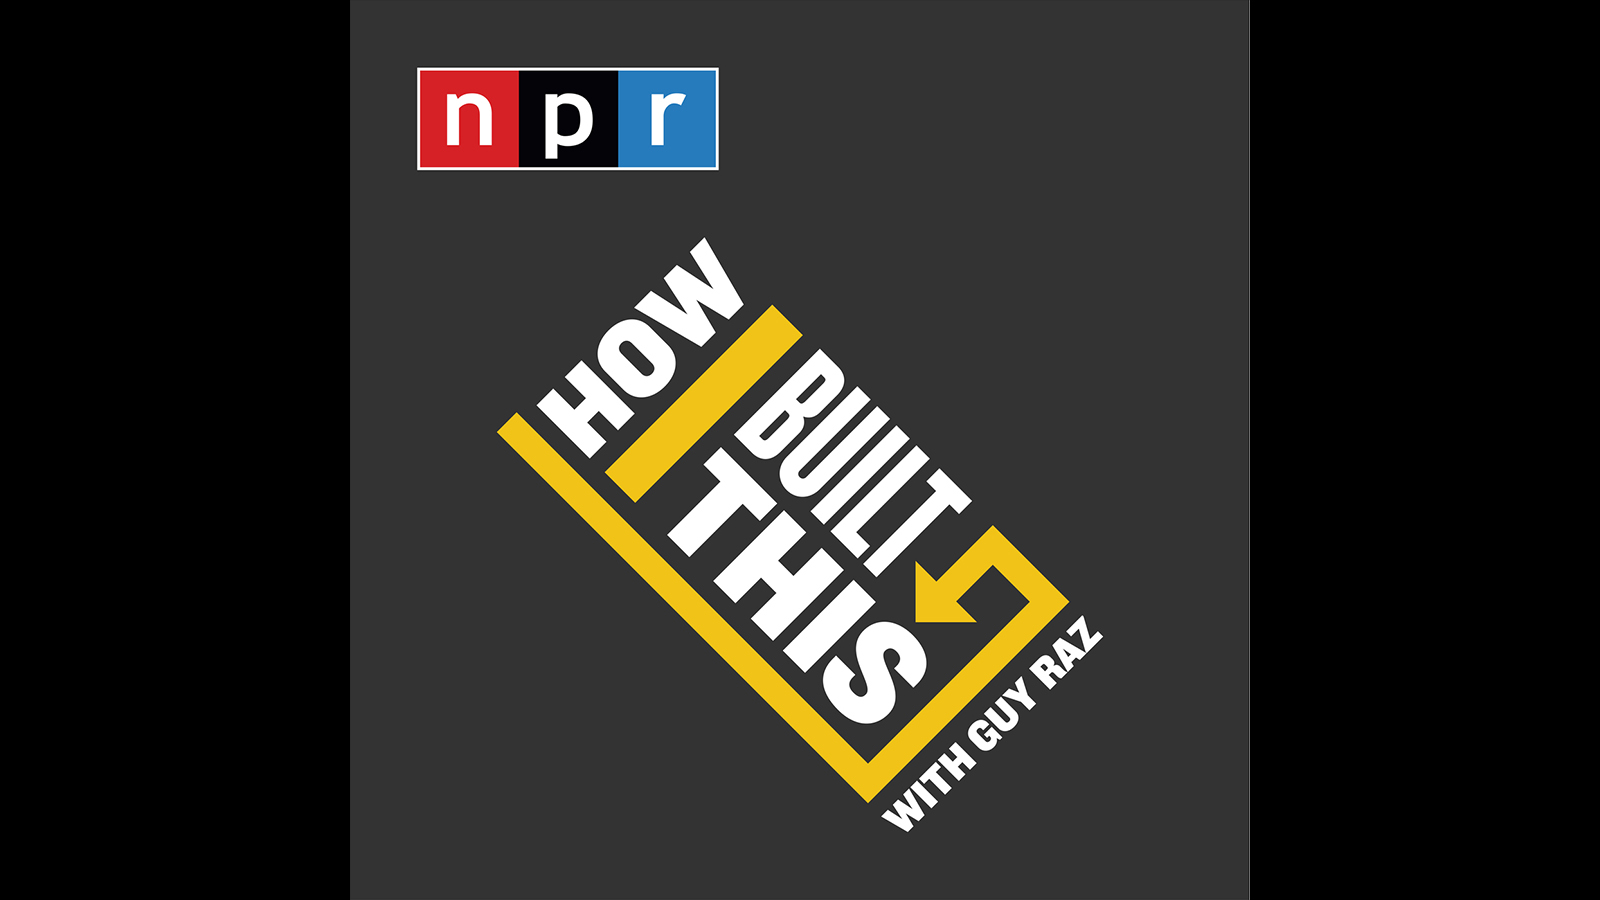 NPR How I Built This logo